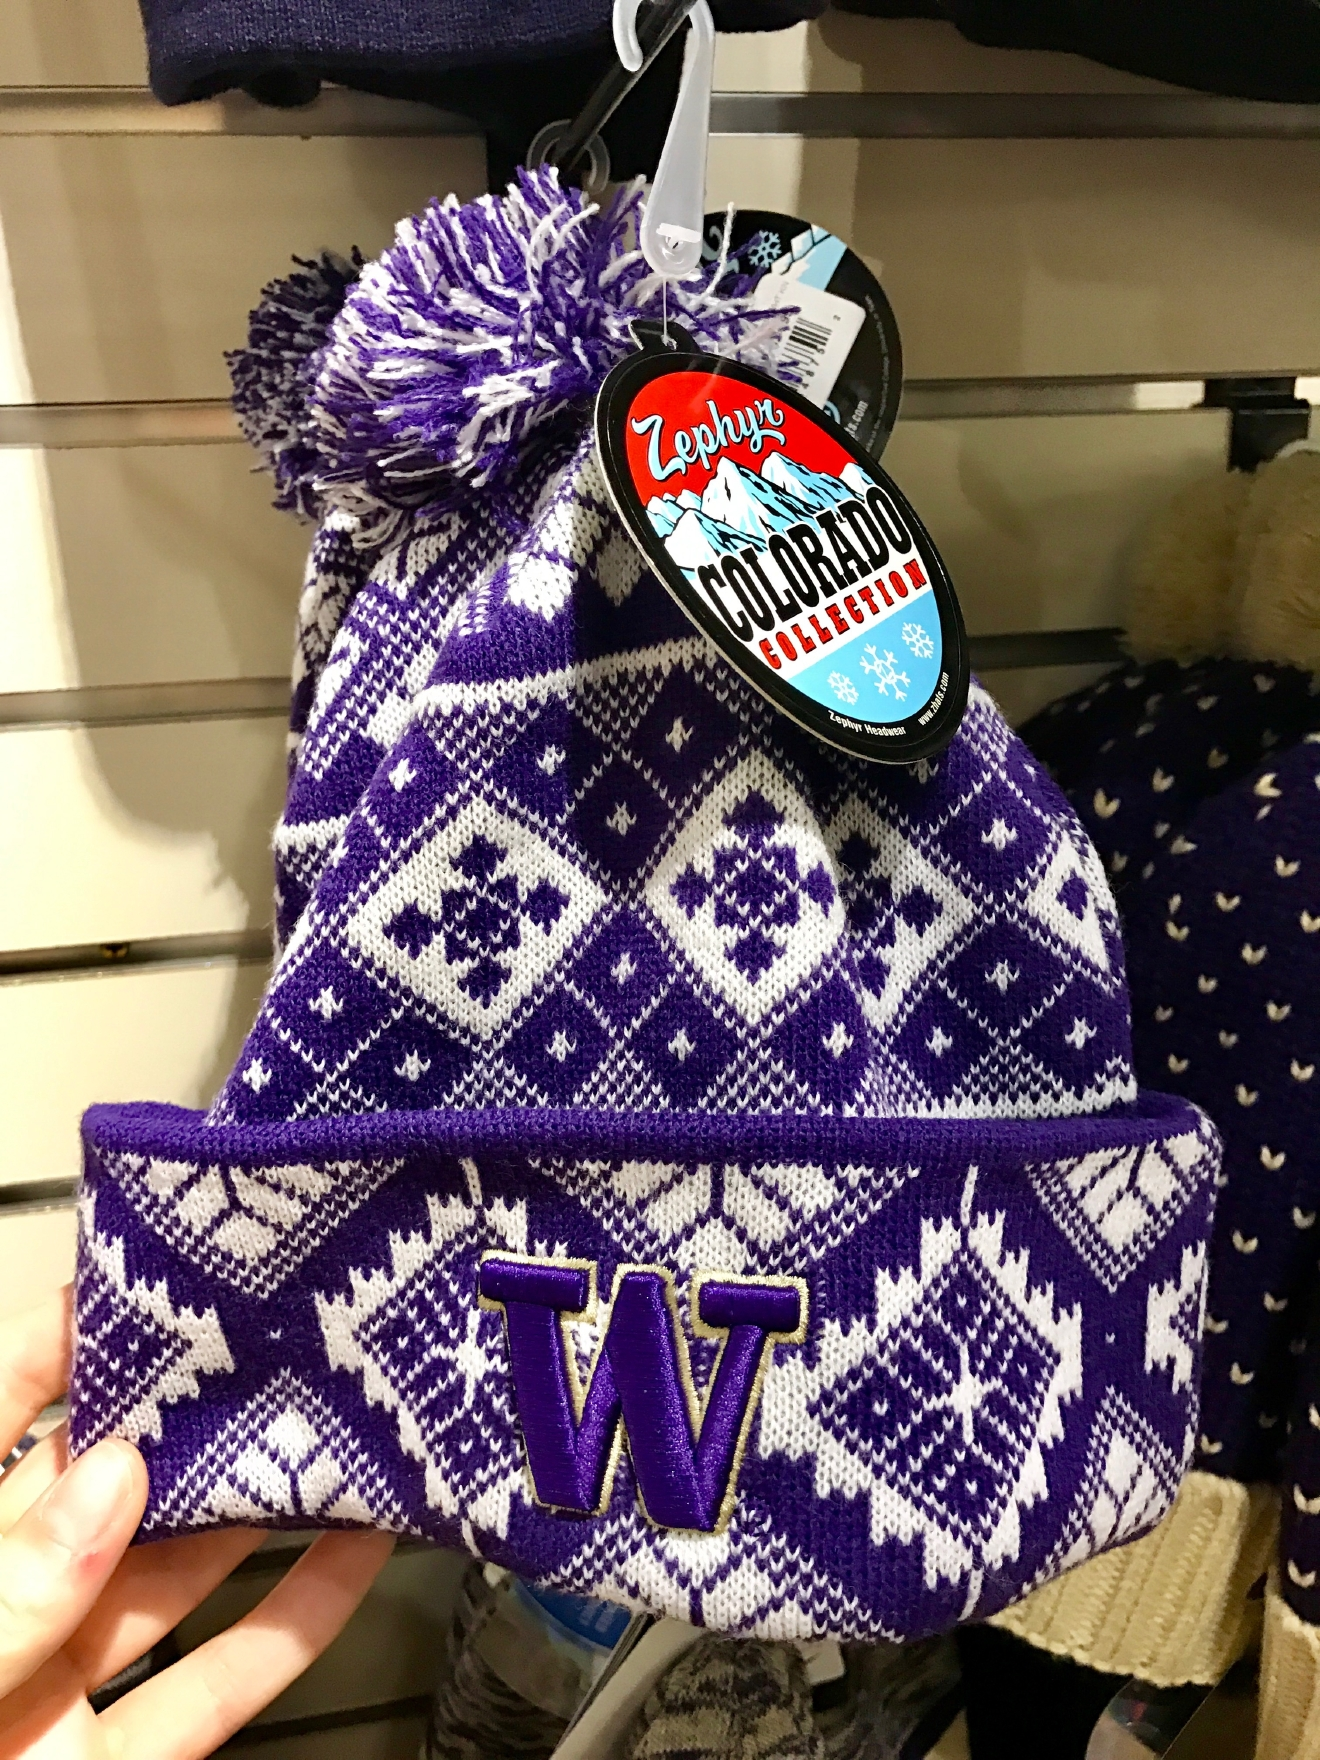 UW Beanie - $24.99                                          Whether you're a current student, alum, or just *love* the Dawgs, it's a pretty exciting time to be a Husky fan right now. Just to catch you up, the University of Washington football team is having one of their best seasons in years, and will be playing the Peach Bowl in Atlanta on December 31st. If you know a Dawg fan, they're probably salivating at the mouth right about now. Which is why it's a perfect time to give them a themed gift! Here are some of the coolest Husky gear we saw at the University Bookstore on the Avenue during our last visit. Pro Tip: They're open 10 a.m. - 7 p.m. on Christmas Eve! (Image: Britt Thorson / Seattle Refined)